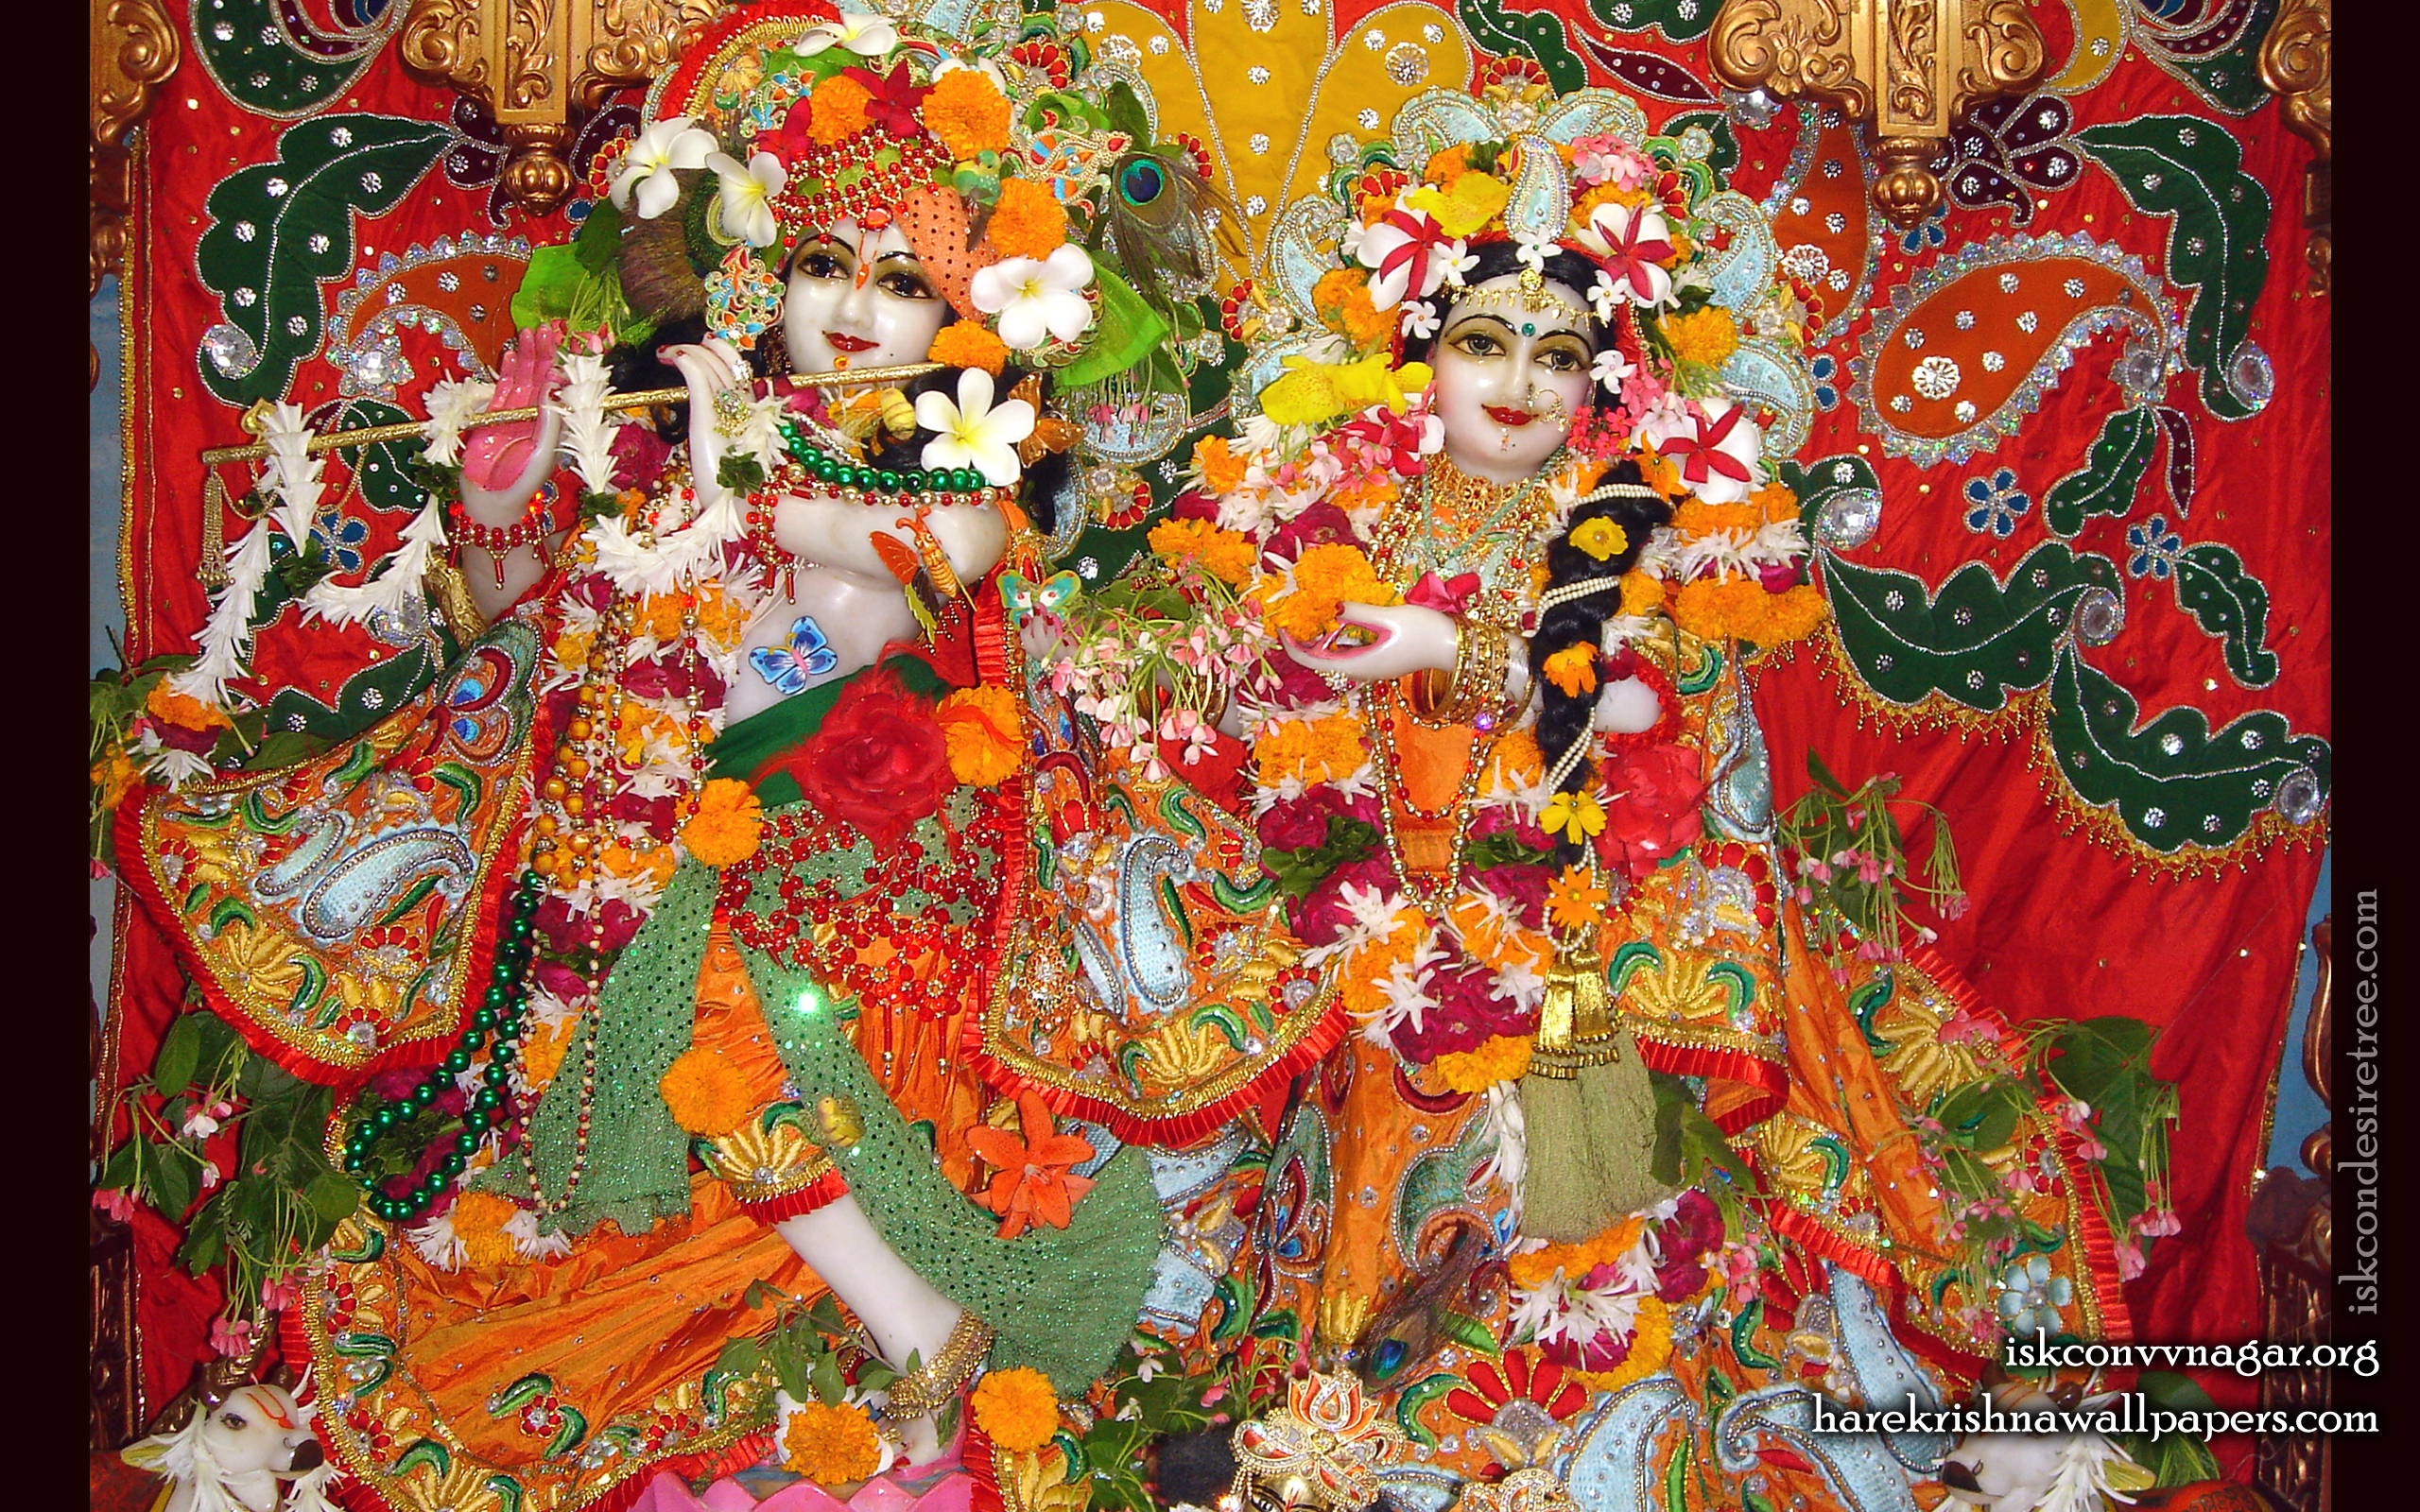 Sri Sri Radha Giridhari Wallpaper (016) Size 2560x1600 Download